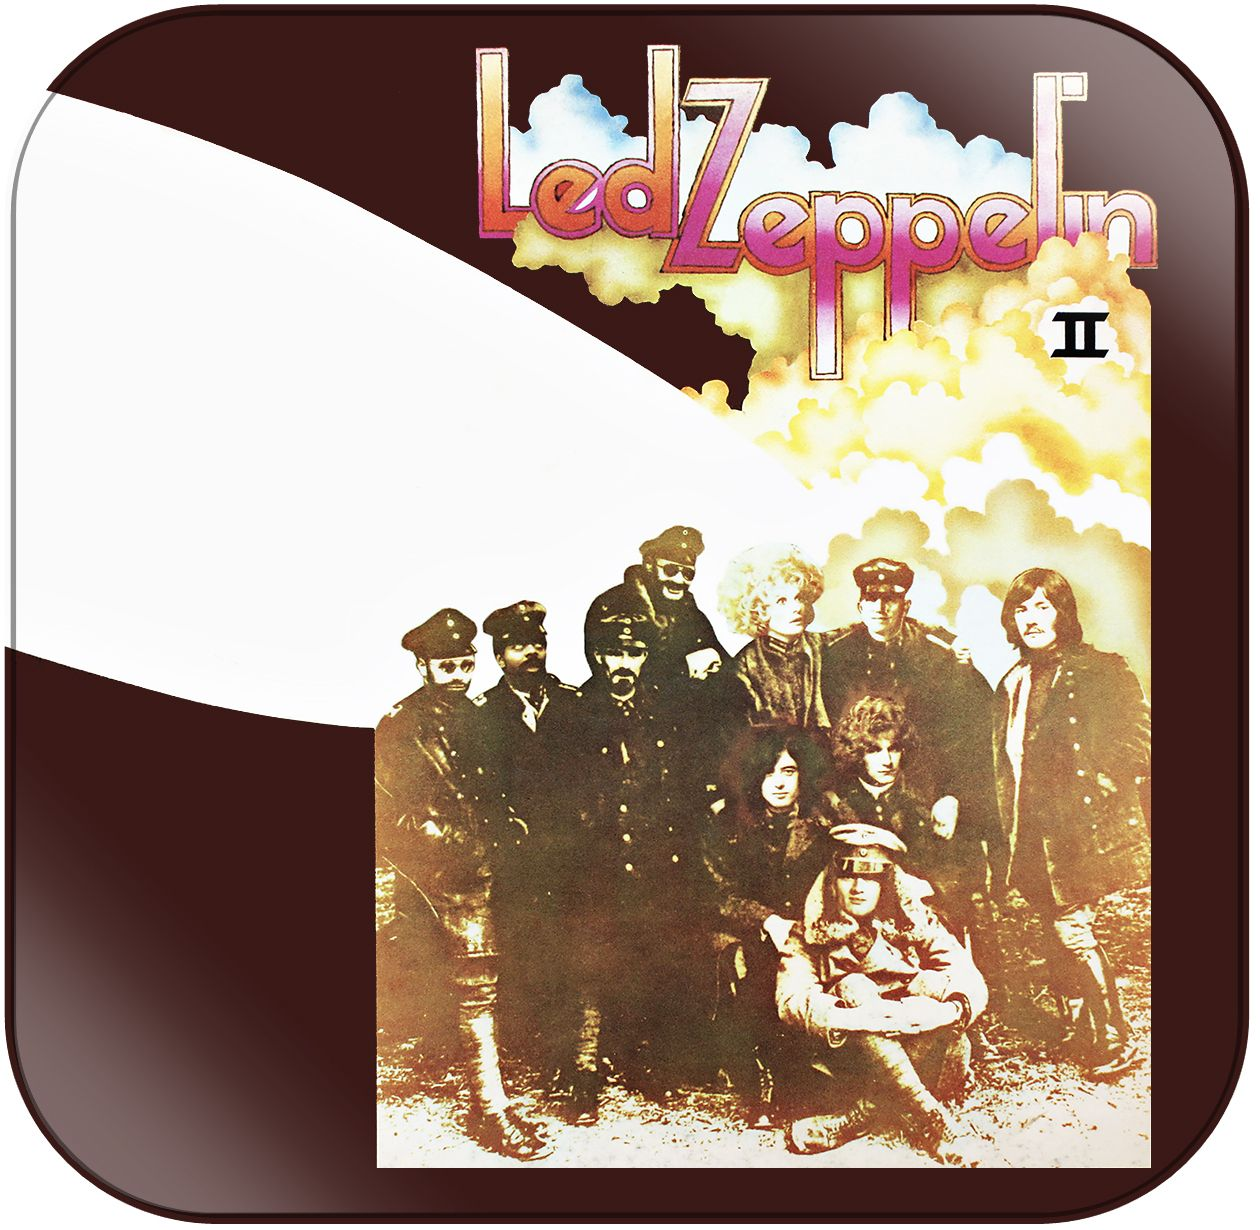 "24/"" sizes 20/"" Led Zeppelin II poster wall art home decor photo print 16/"""